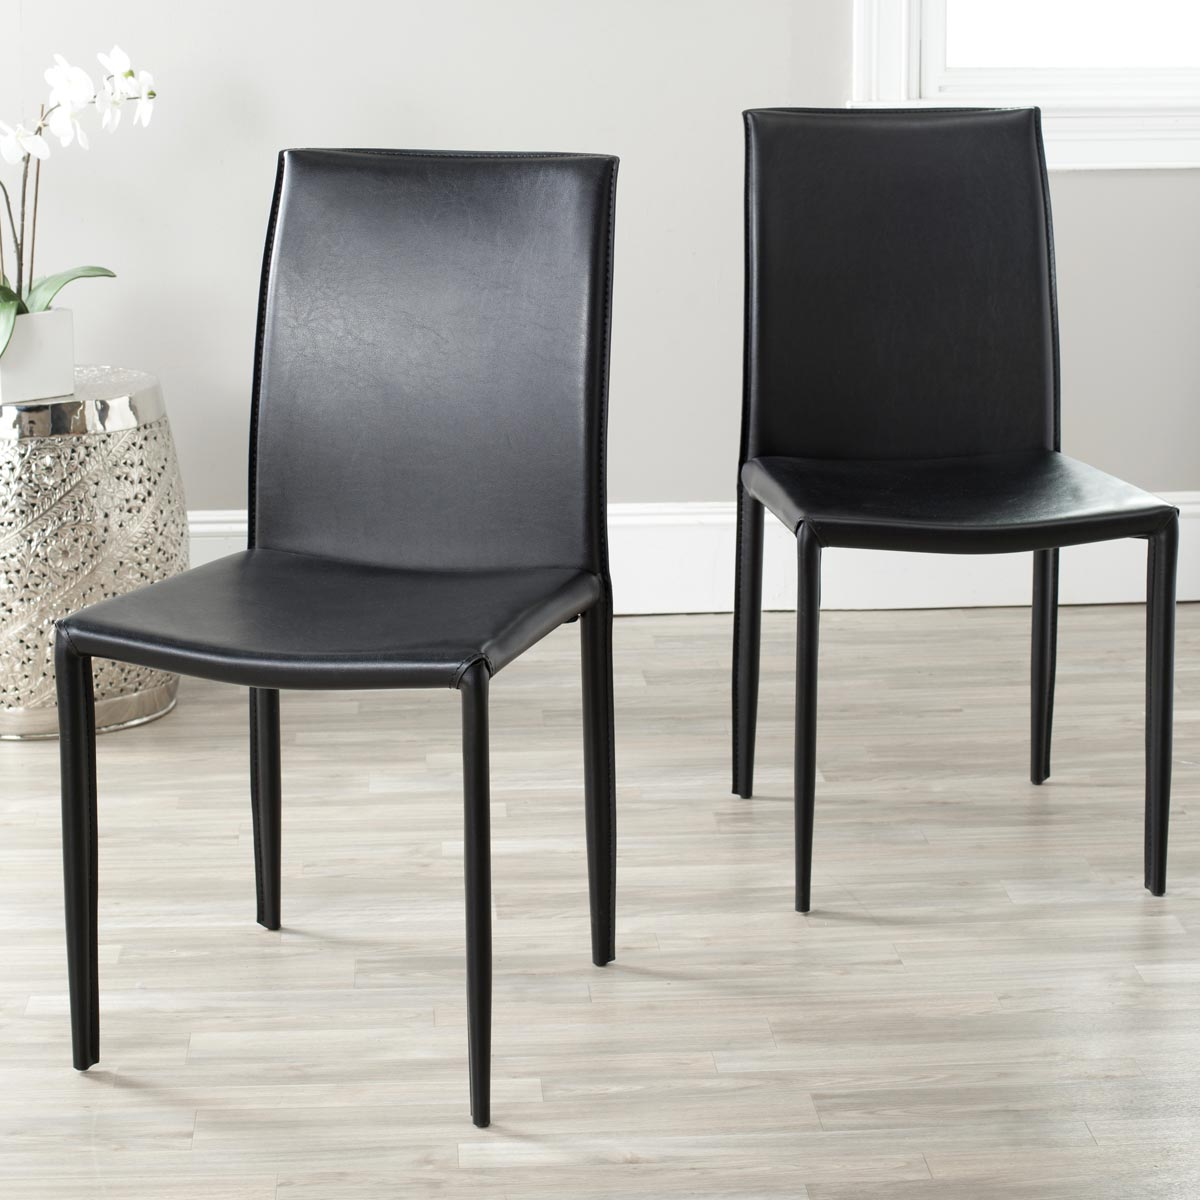 Image of: Safavieh Dining Chairs Black